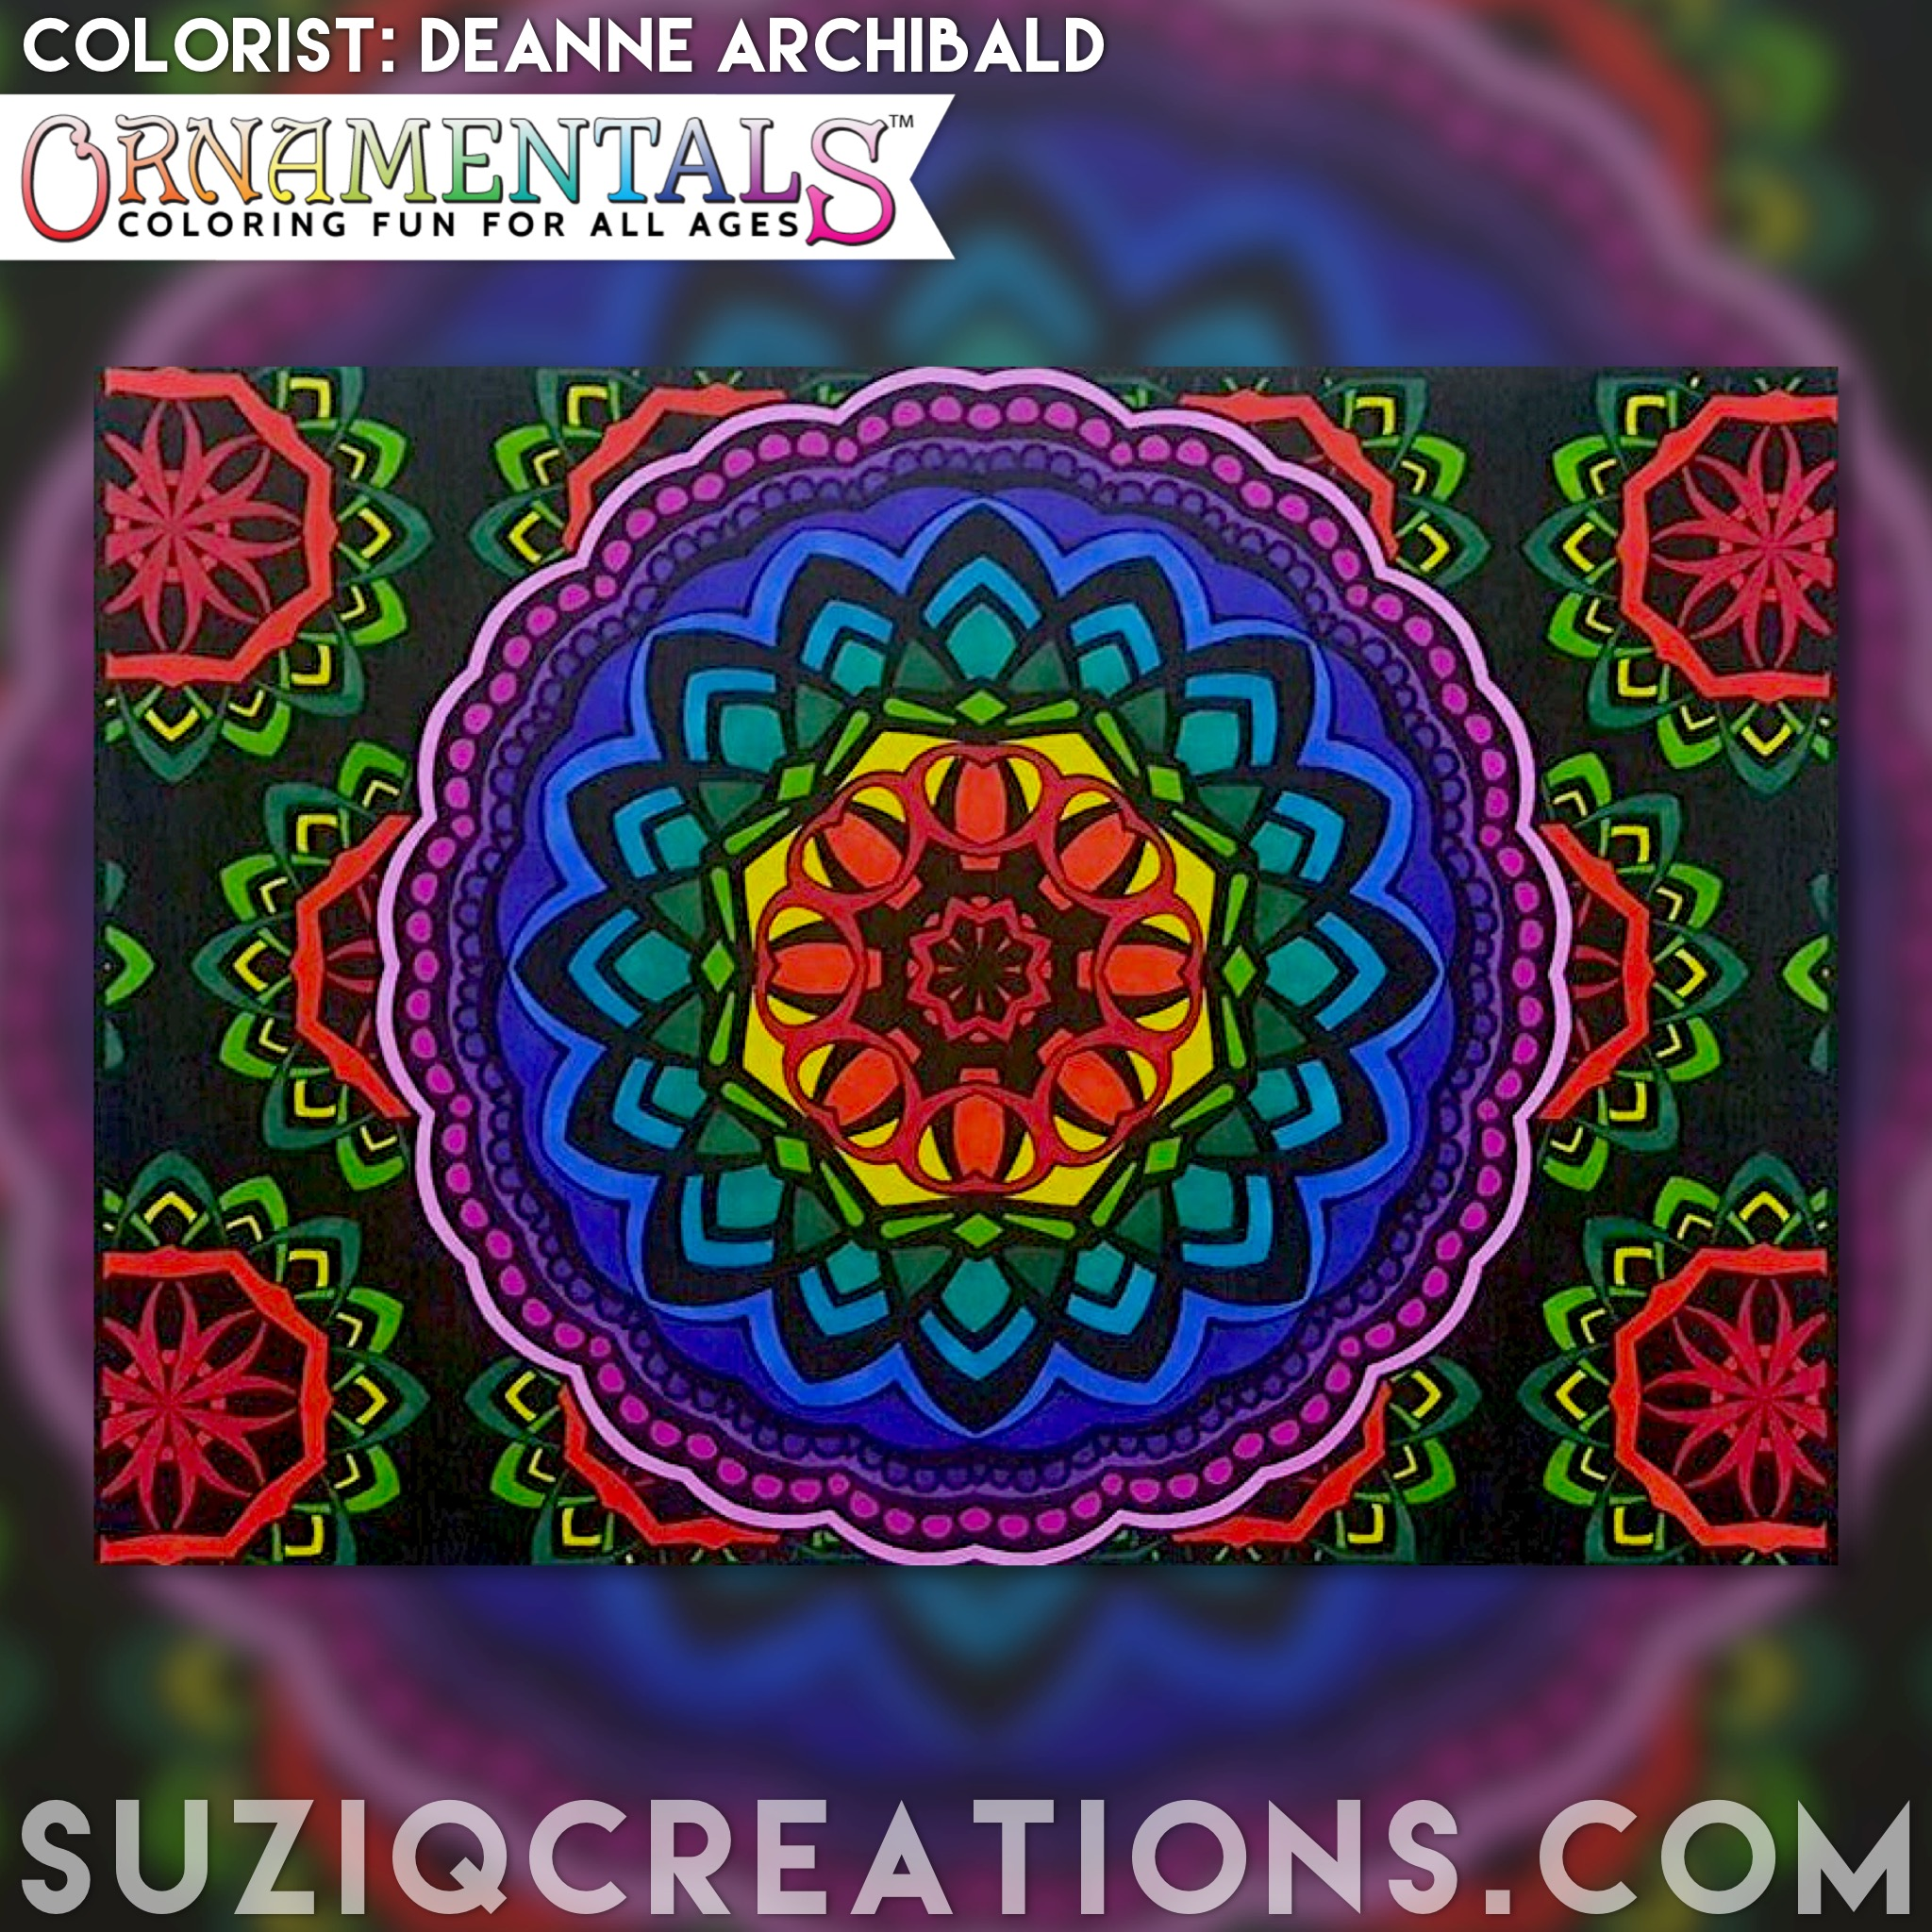 "From <i><a href=""http://www.suziqcreations.com/loa/"">OrnaMENTALs Lights Out</a></i> - colorist Deanne Archibald."